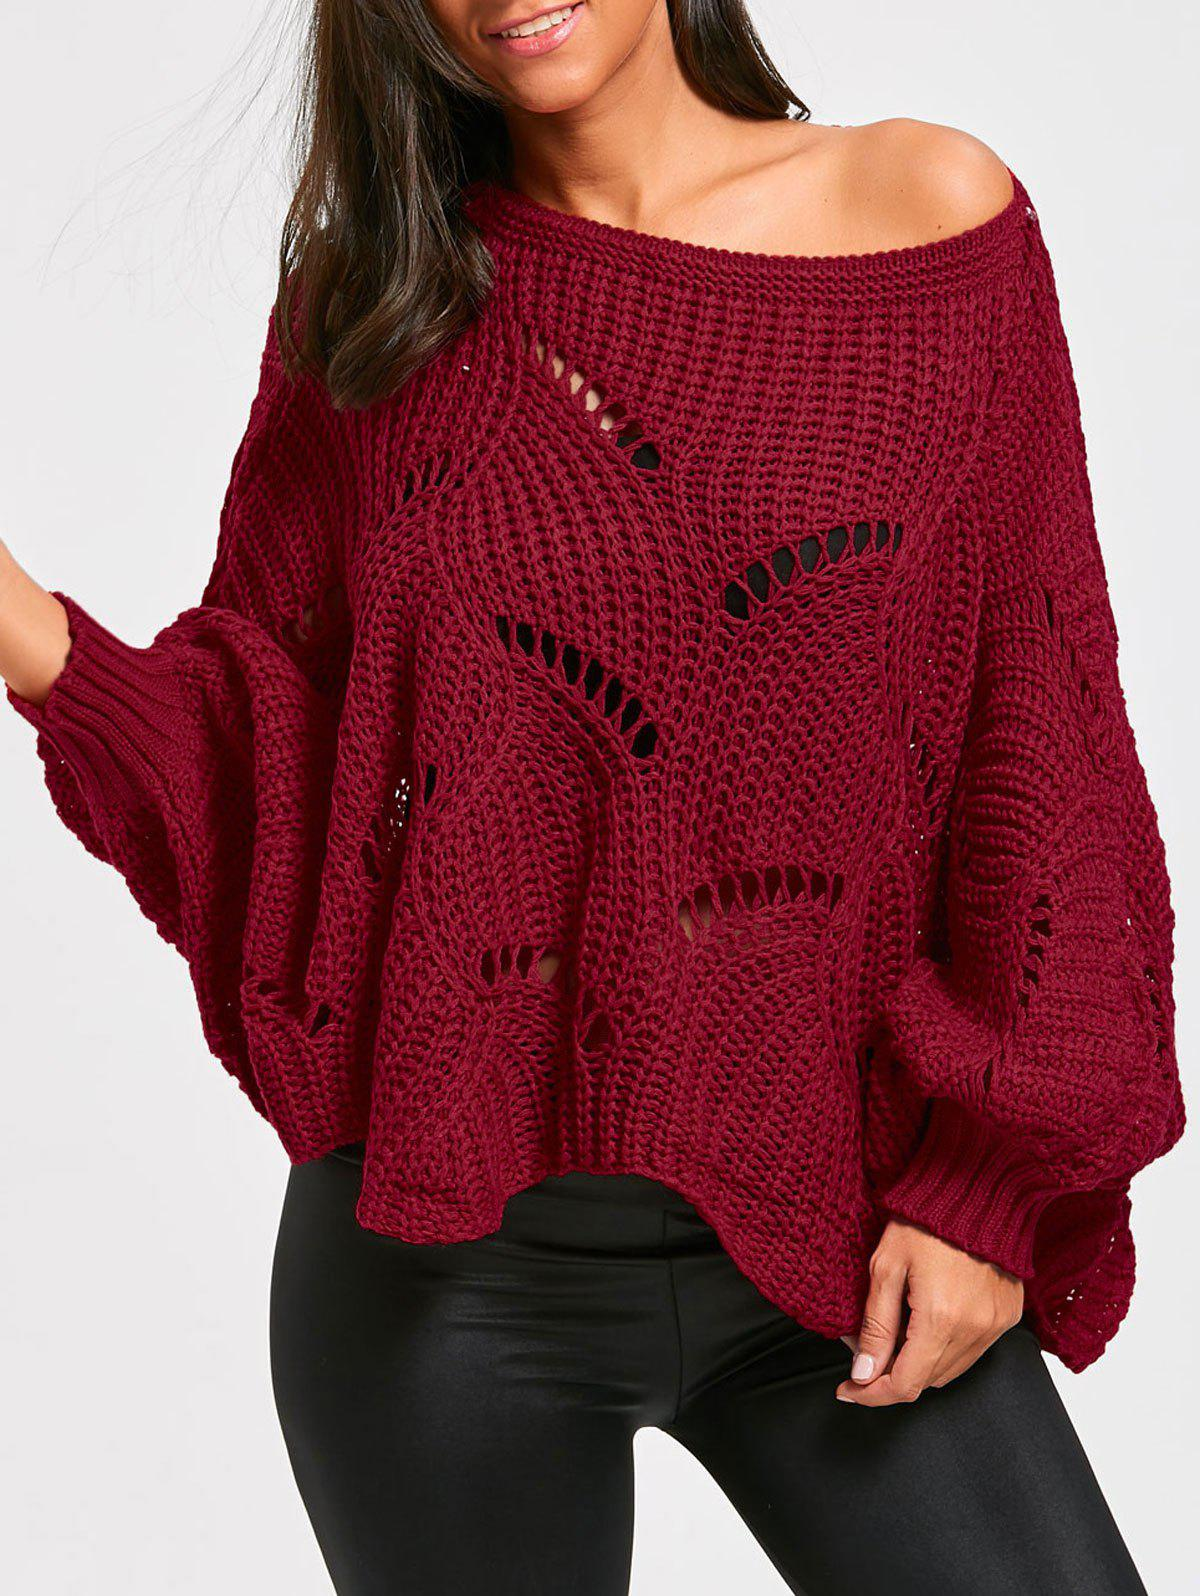 Oversized Batwing Sleeve Tunic Chunky SweaterWOMEN<br><br>Size: ONE SIZE; Color: WINE RED; Type: Pullovers; Material: Cotton,Polyester; Sleeve Length: Full; Collar: Round Neck; Style: Casual; Pattern Type: Solid; Season: Fall,Spring; Weight: 0.3700kg; Package Contents: 1 x Sweater;